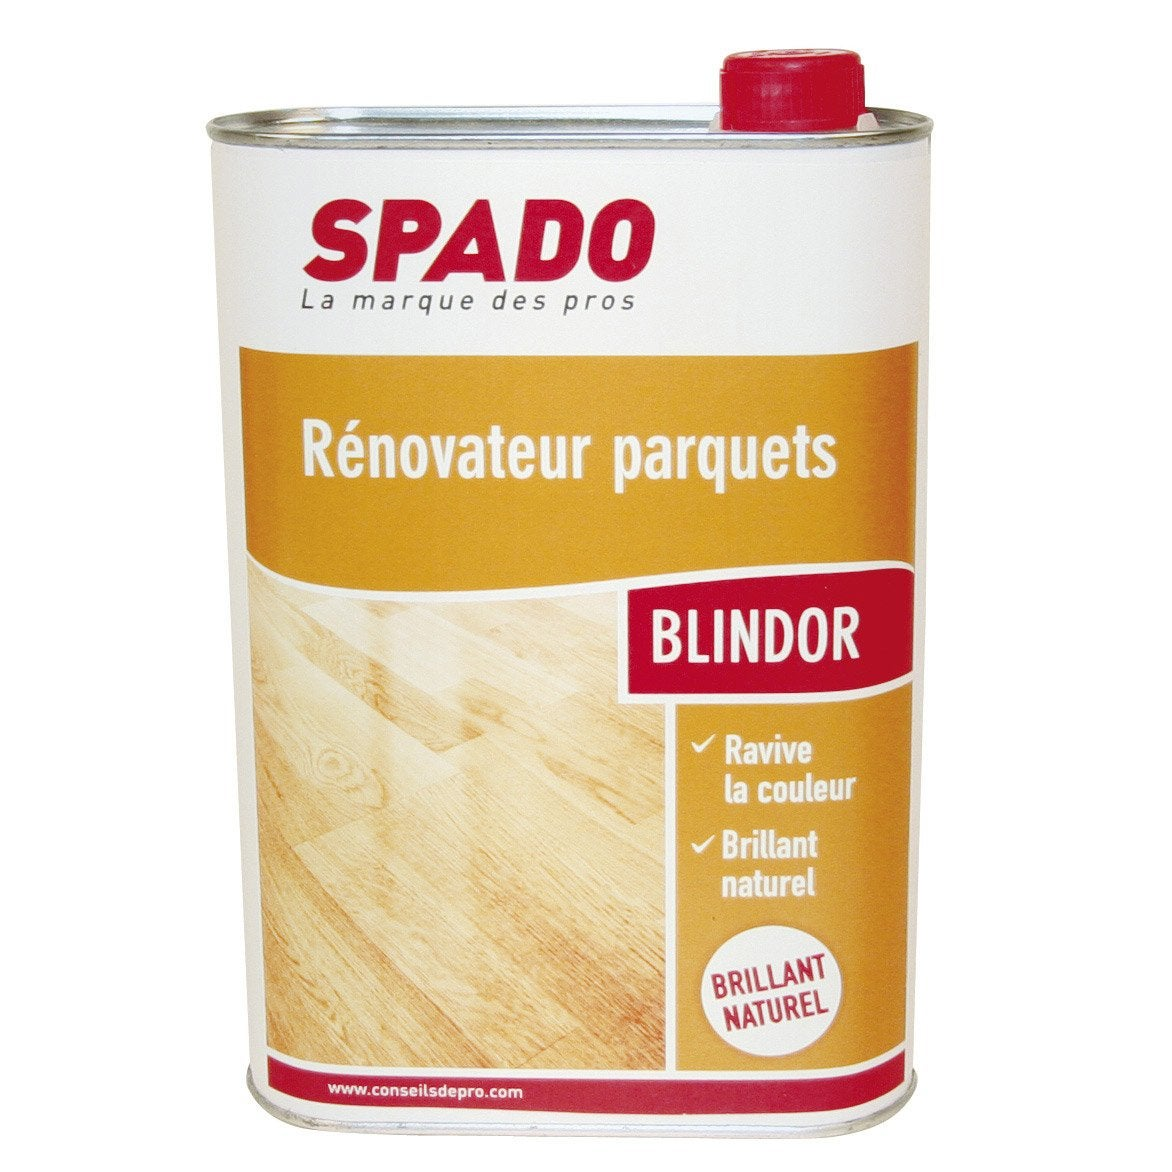 protecteur emulsion brillante parquet blindor spado 1 l leroy merlin. Black Bedroom Furniture Sets. Home Design Ideas